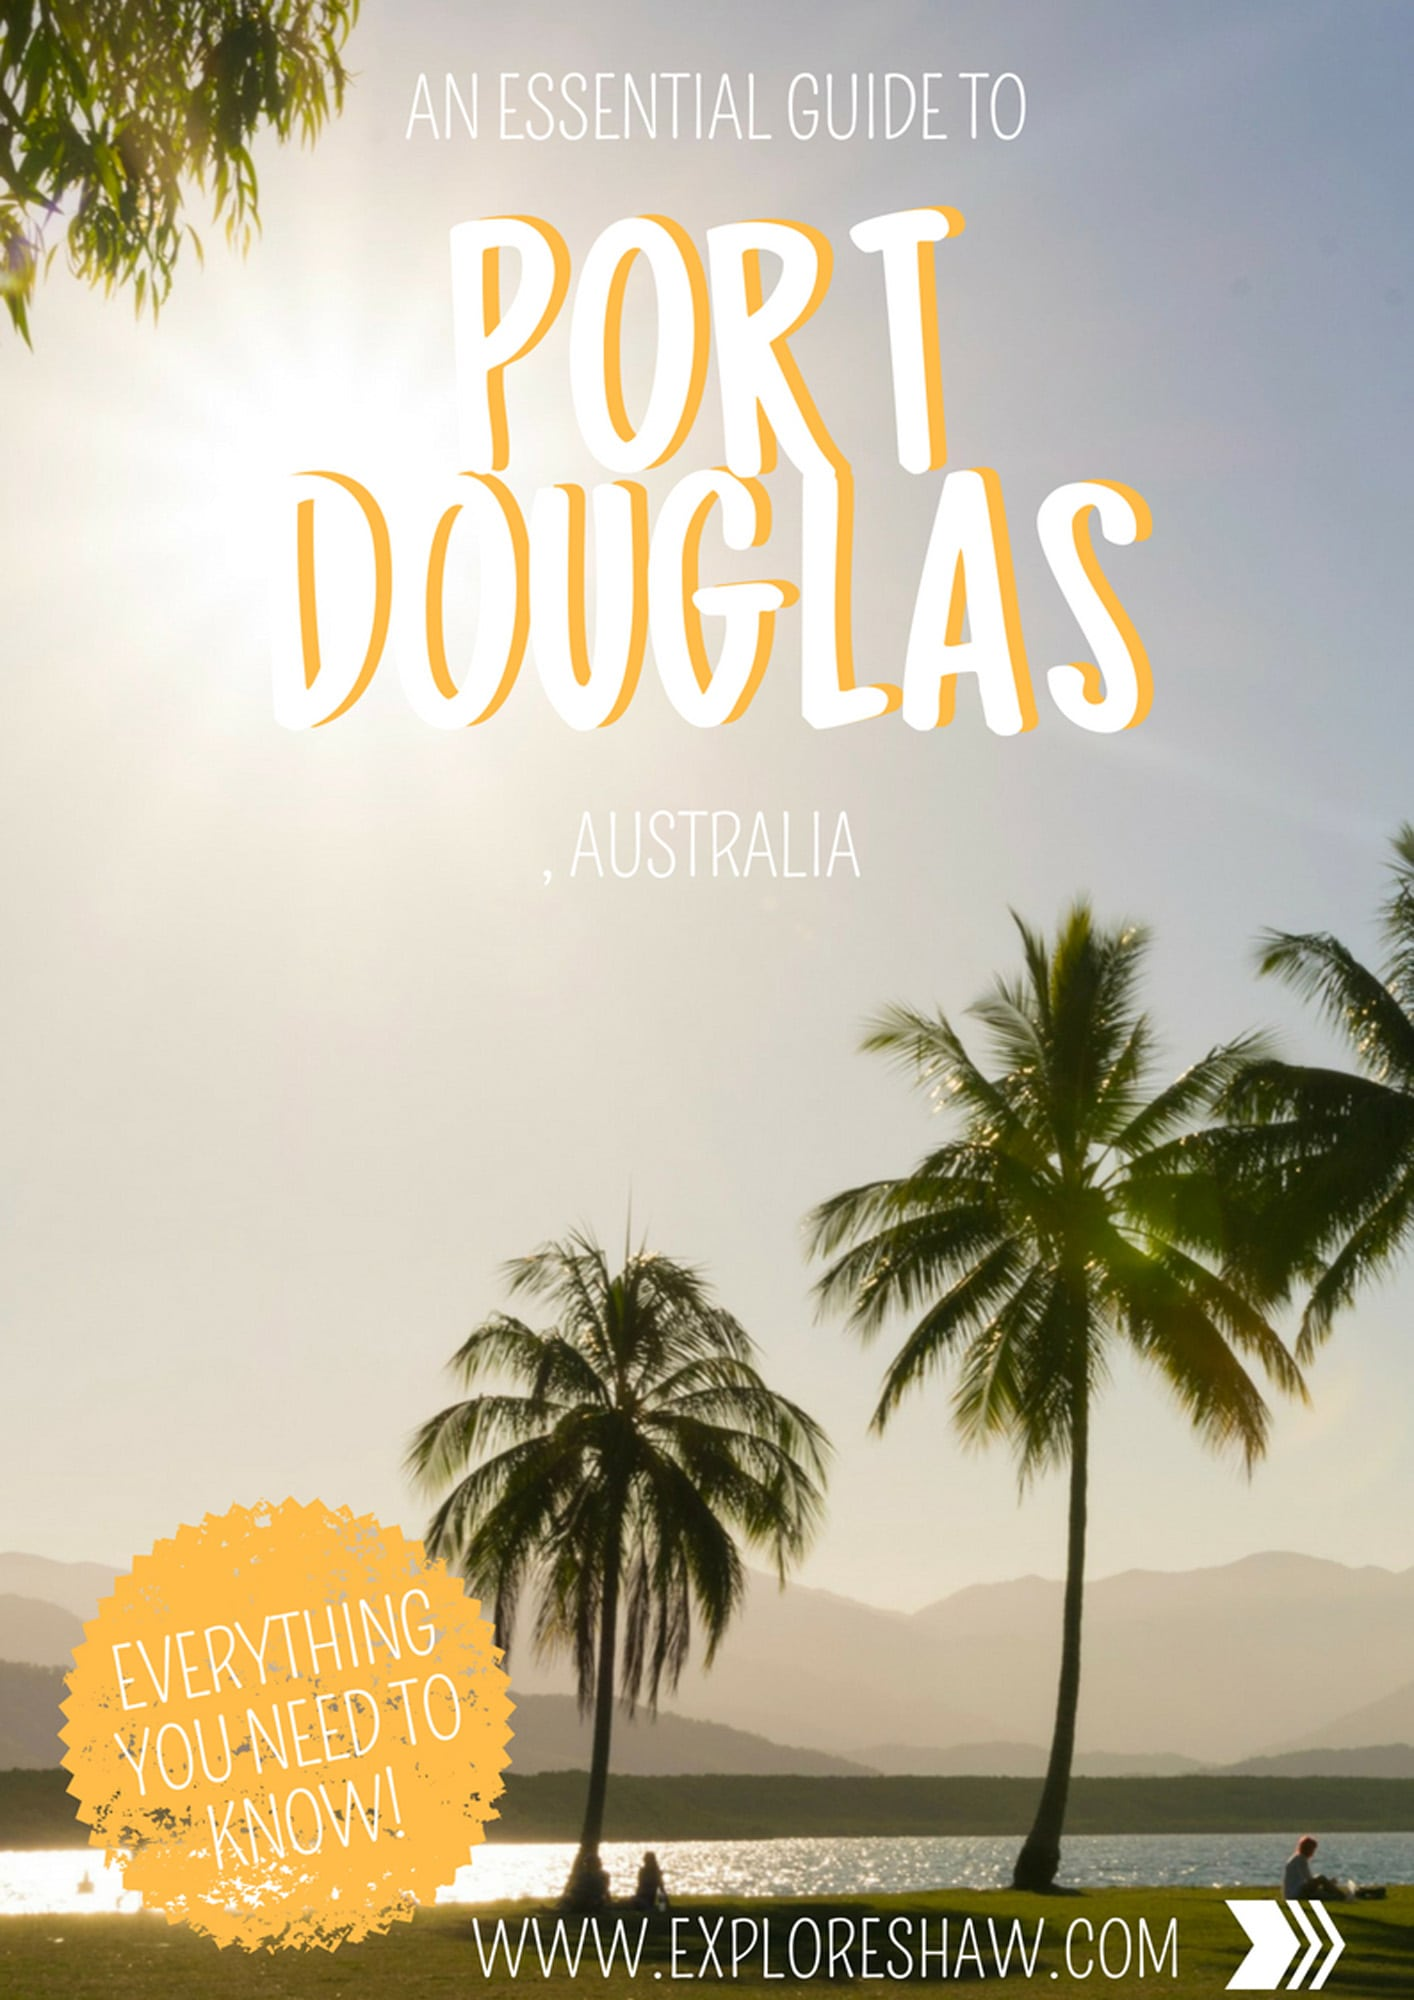 AN ESSENTIAL GUIDE TO PORT DOUGLAS